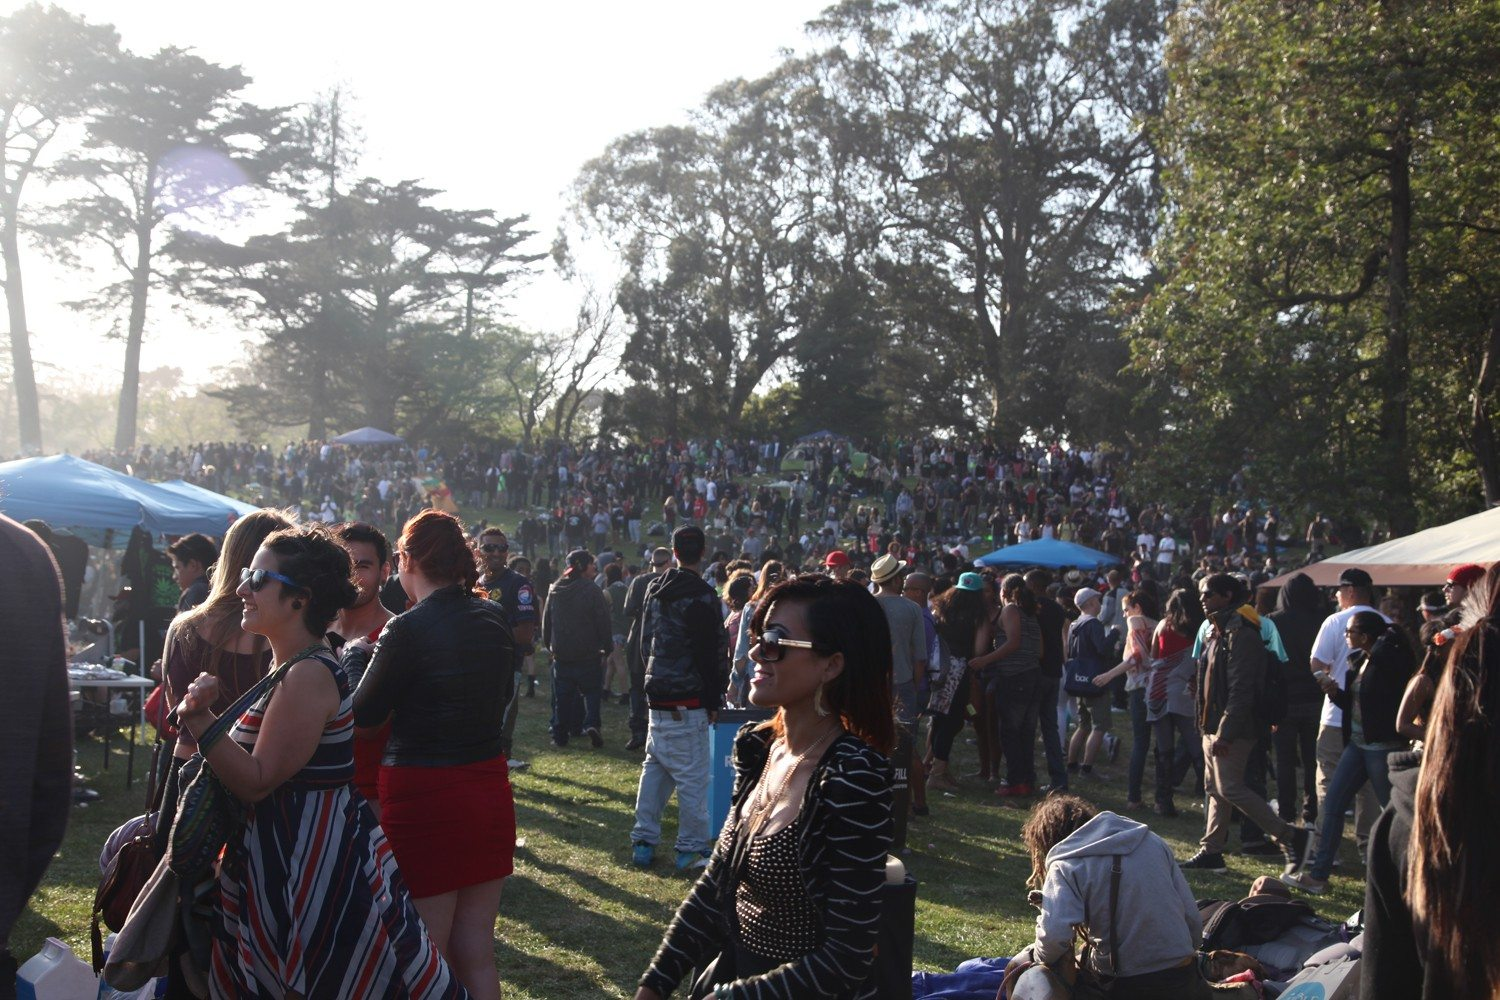 Juan Pardo/special to the S.F. ExaminerRevelers celebrate 4/20 at Hippie Hill in Golden Gate Park.